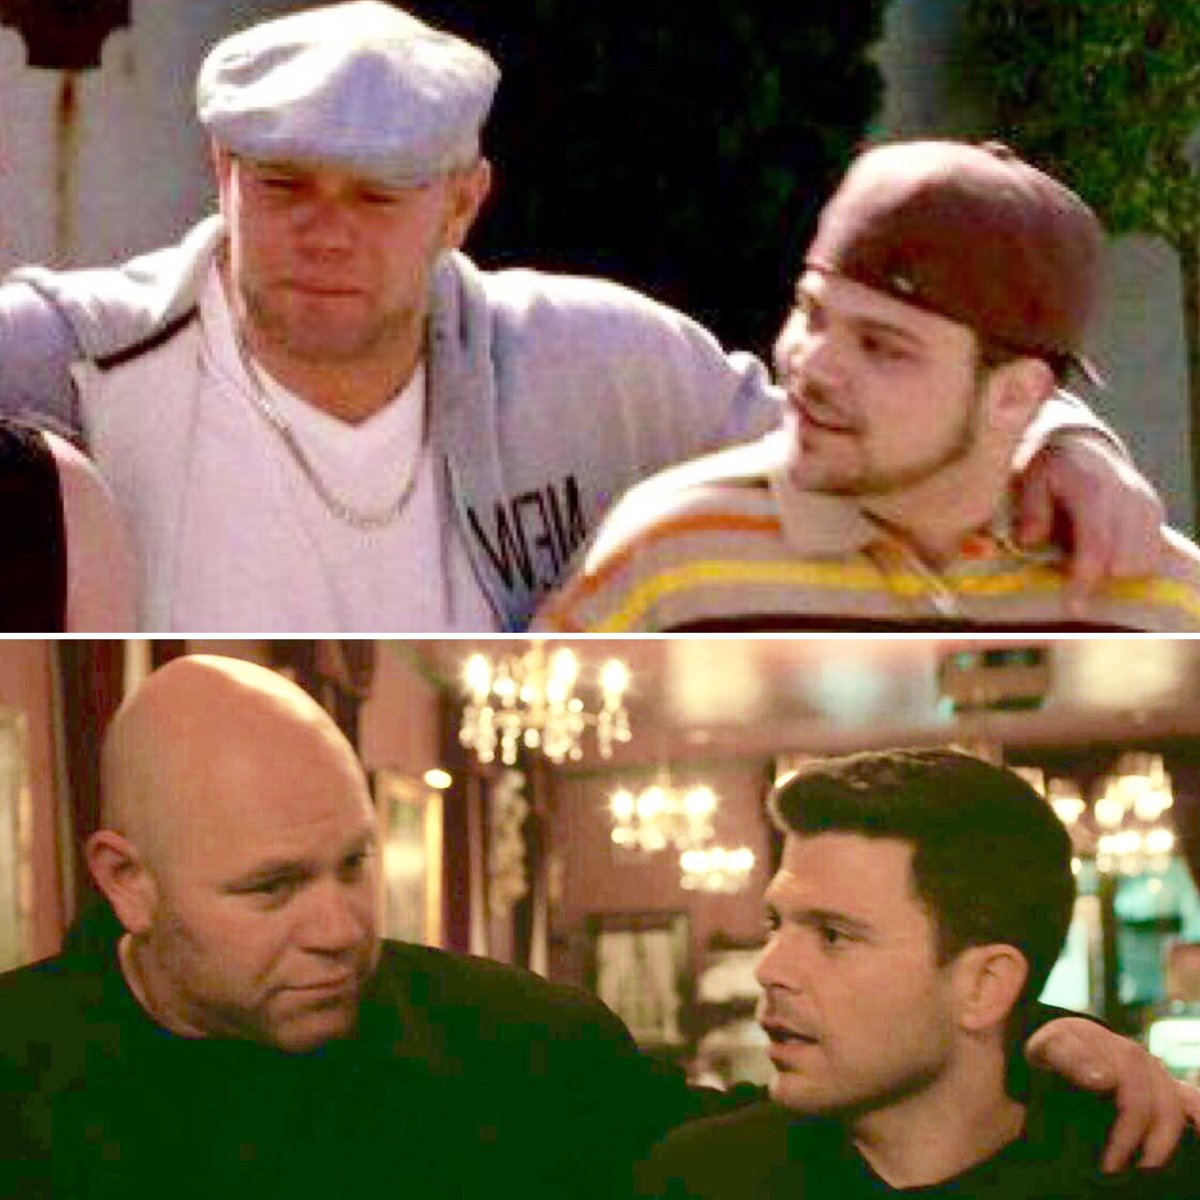 Wow 12 years later. How fast time goes. So happy my guy @D_Lombardozzi is coming up on @Power_STARZ tonight! https://t.co/MiM1HajLyR